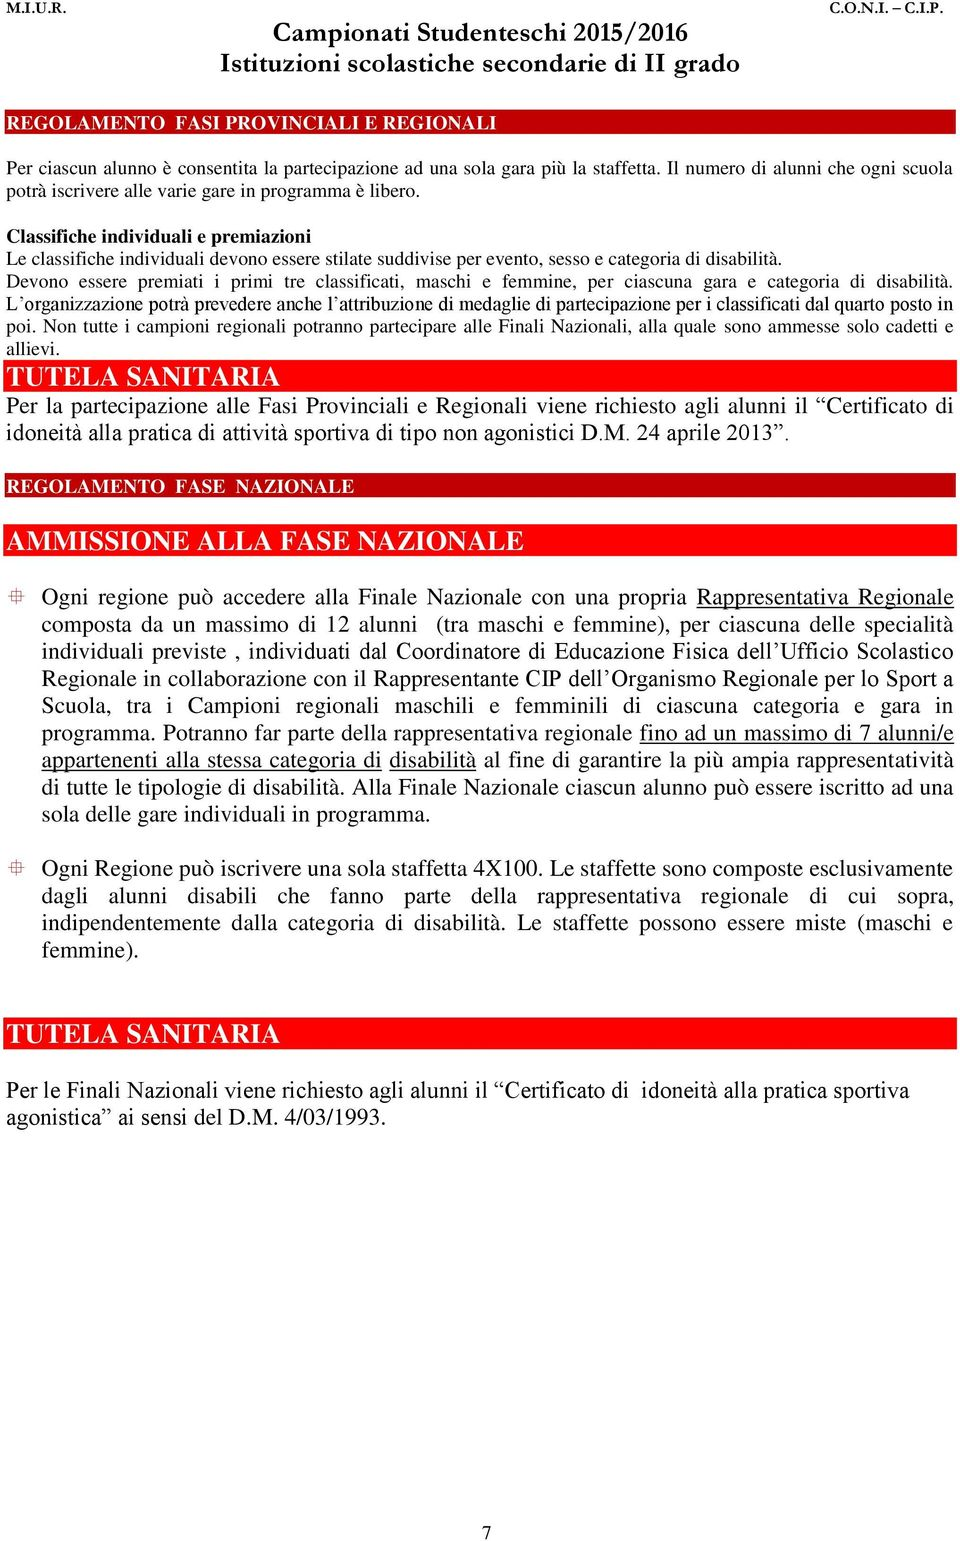 Classifiche individuali e premiazioni Le classifiche individuali devono essere stilate suddivise per evento, sesso e categoria di disabilità.